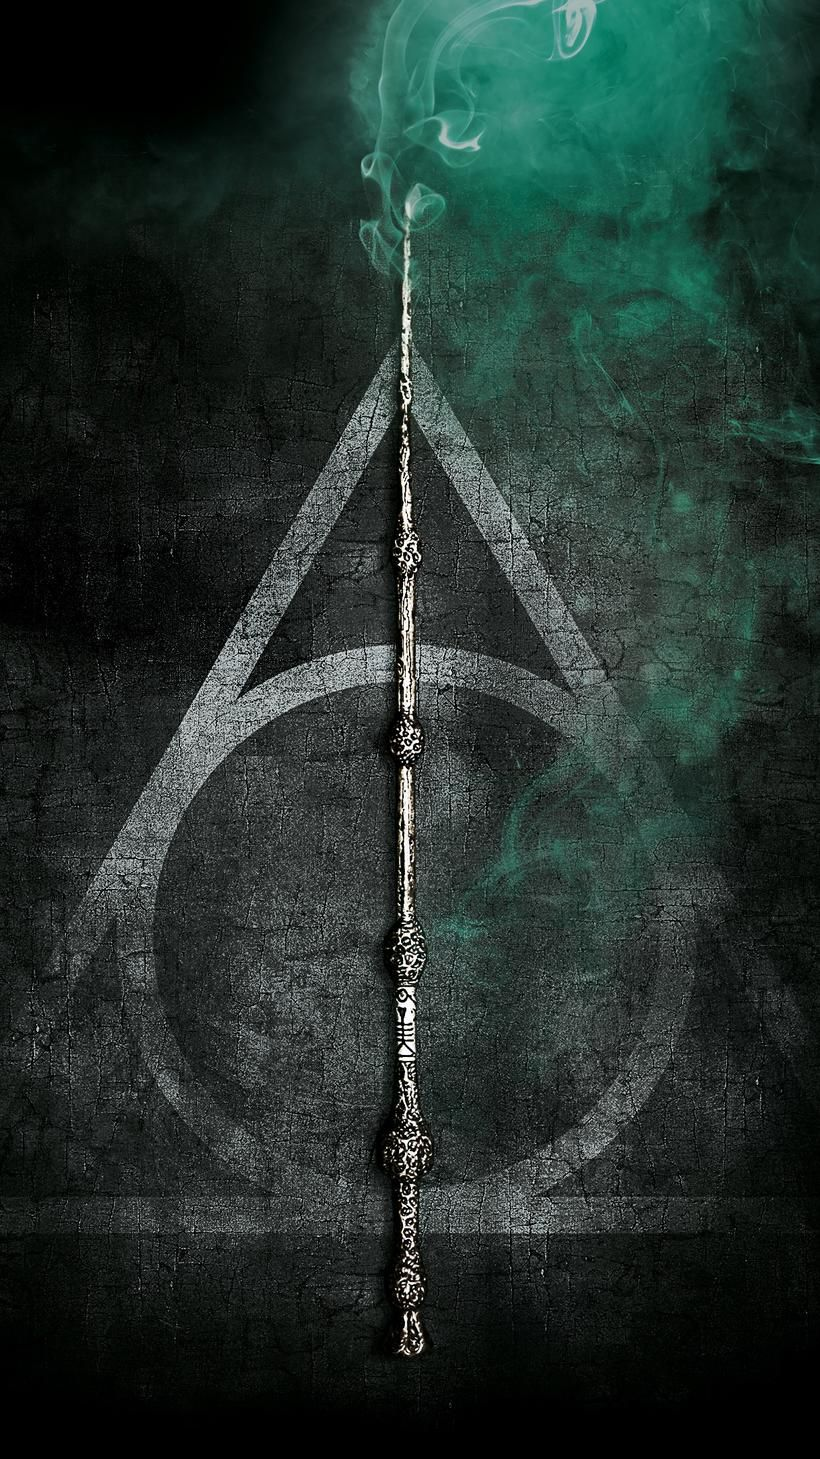 8c9f5b218f413 Harry Potter and the Deathly Hallows  Part 2 (2011) Phone Wallpaper ...